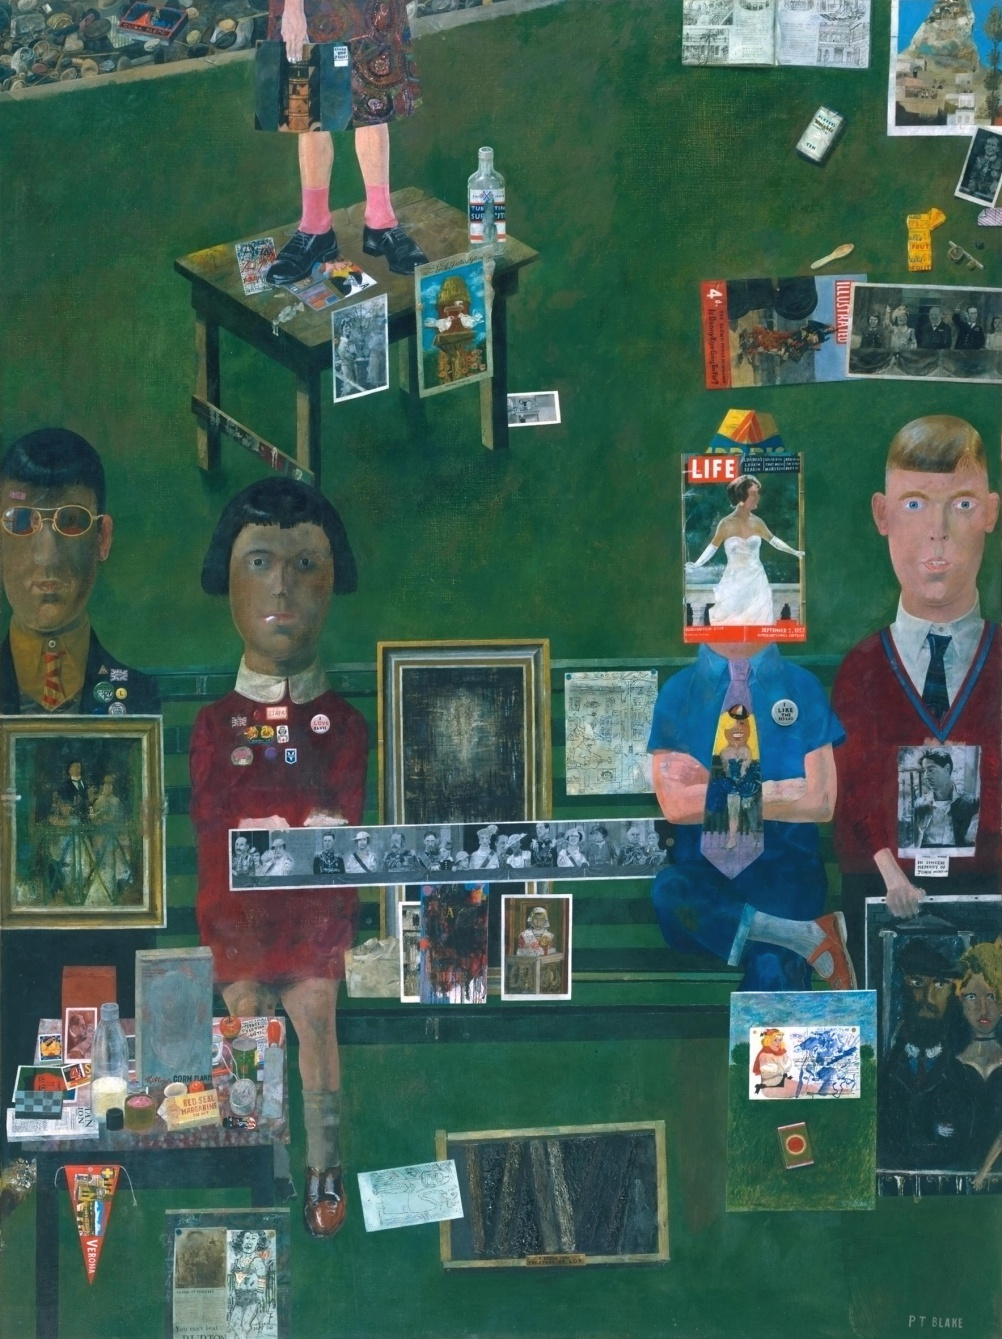 Peter Blake On the Balcony 1955-7 Oil paint on canvas 1213x908mm Tate Presented by the Contemporary Art Society 1963 © Peter Blake 2015. All rights reserved, DACS